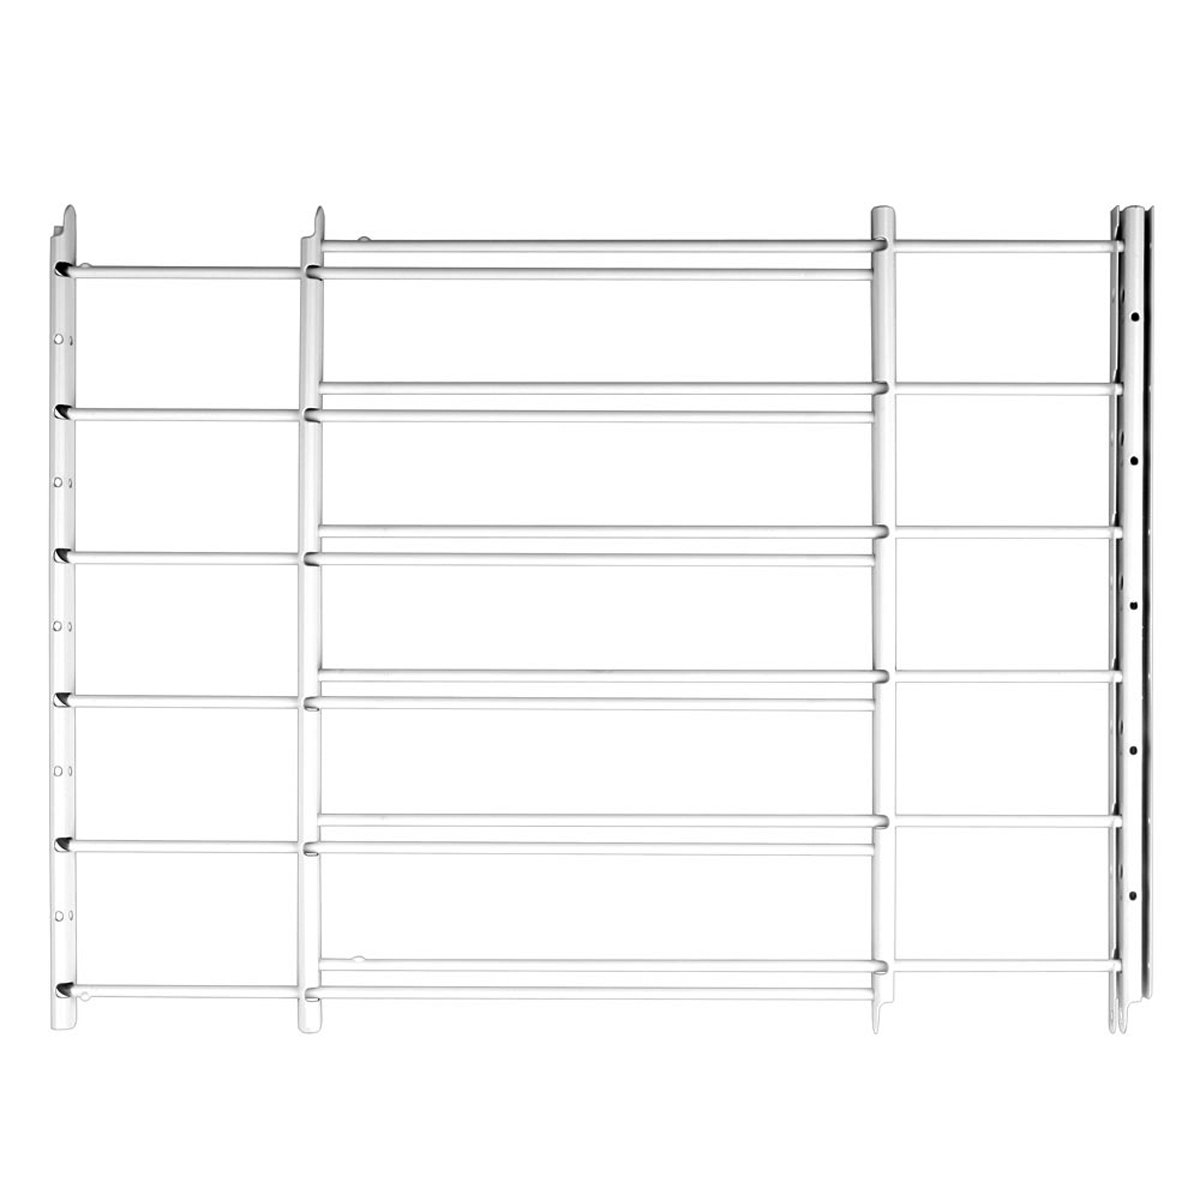 Knape & Vogt John Sterling Swing-Open Style 6-Bar Child Safety and Window Guard, White, 1136, Width 24'' to 42''-Max Height: 25'', Black by Knape & Vogt